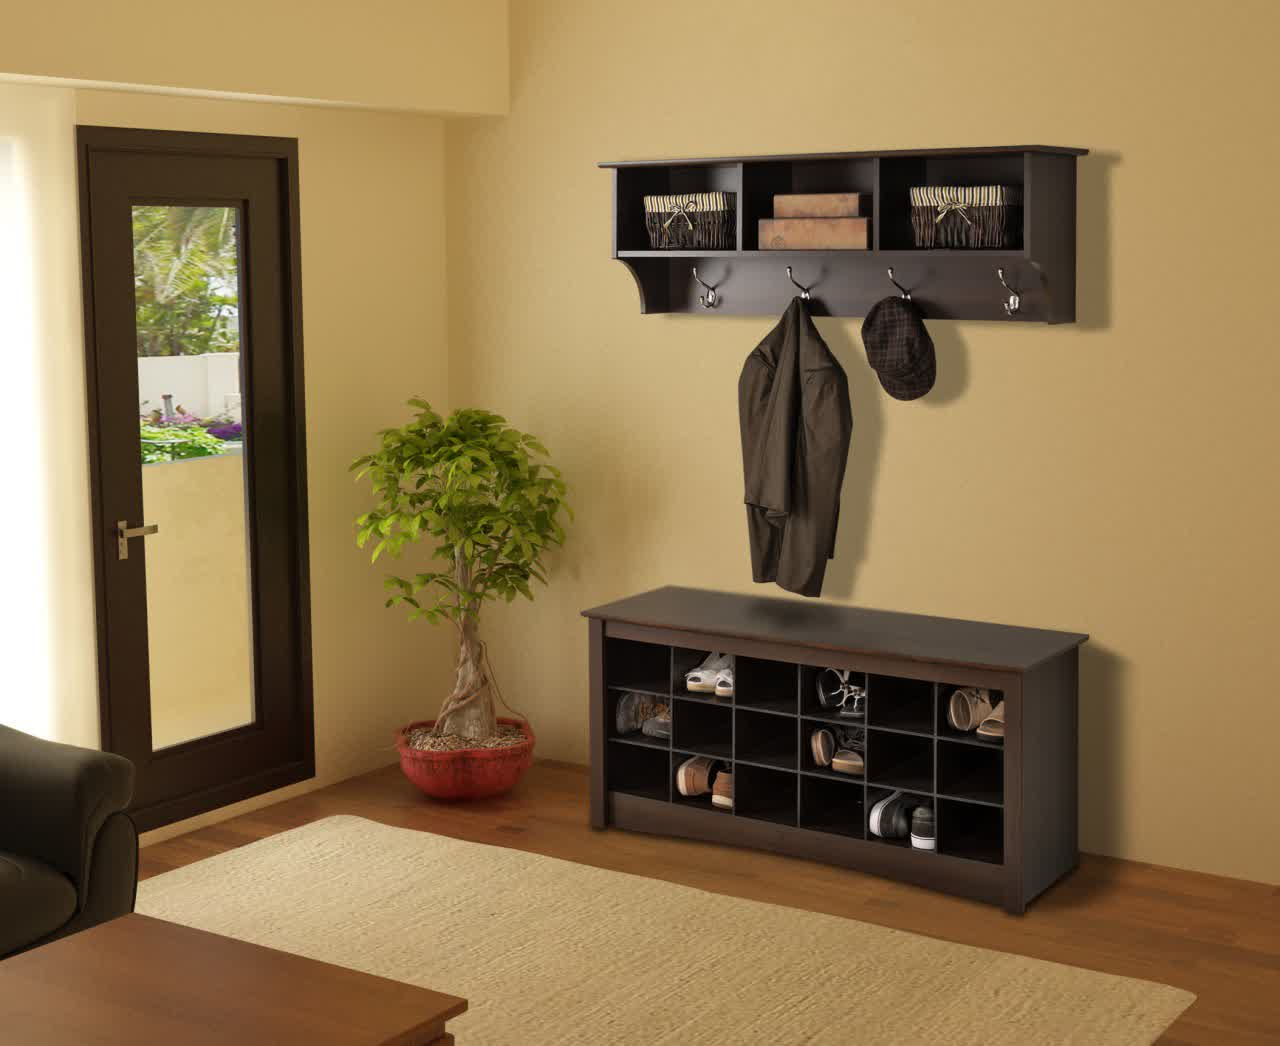 Black Coated Wood Shoes Storage With Bench In Entryway Area Wall Mounted  Shelf With Hangers In